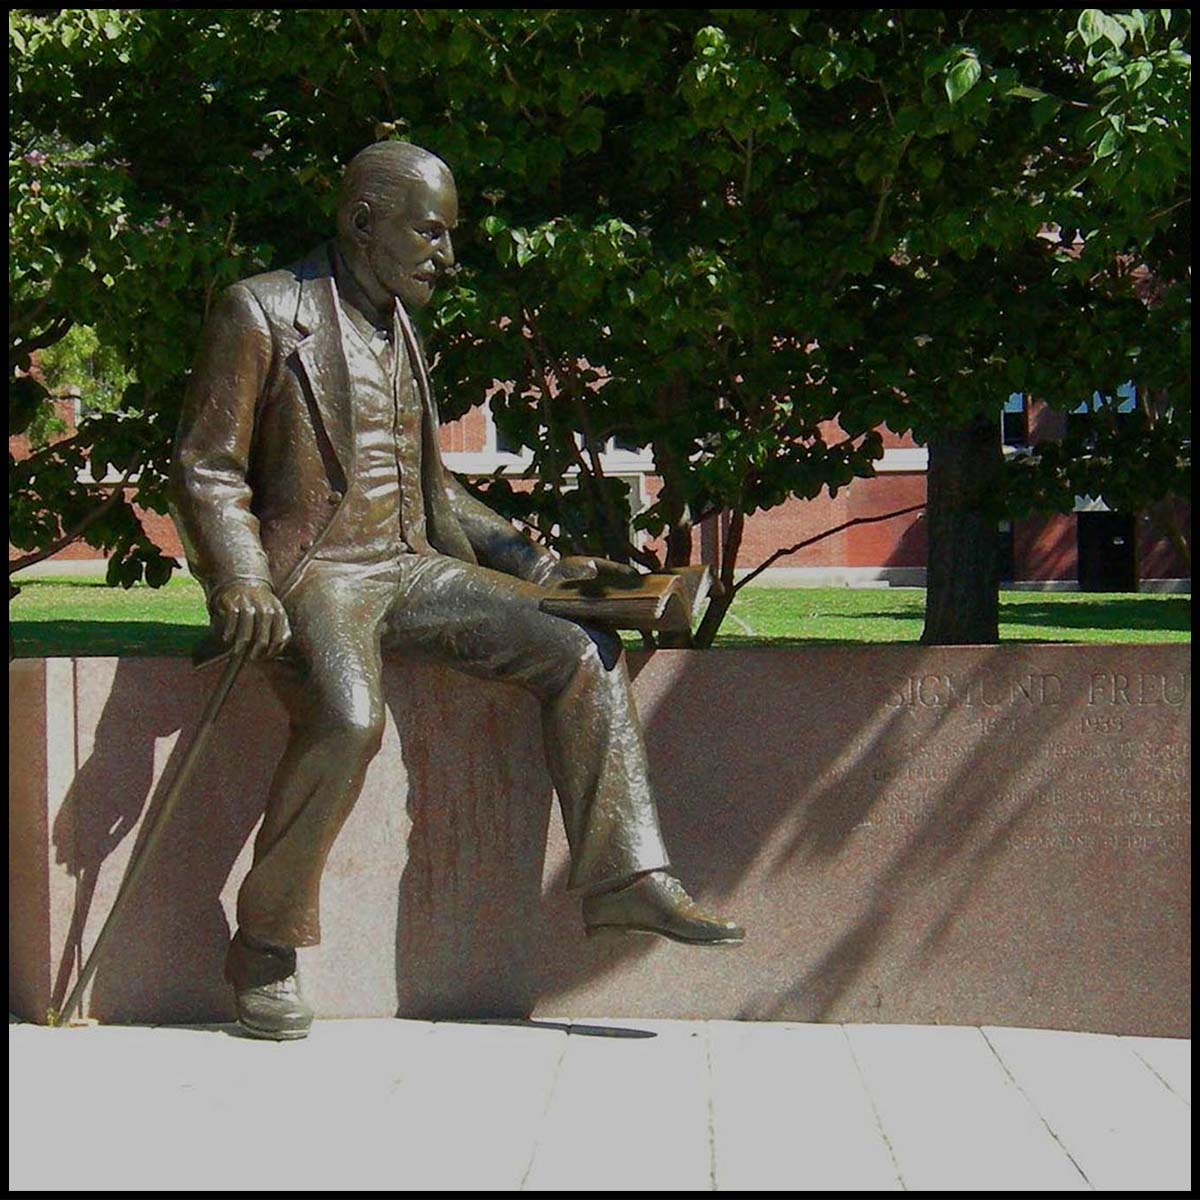 photo of bronze sculpture of Sigmund Freud sitting on a stone bench in a plaza with trees and grass behind